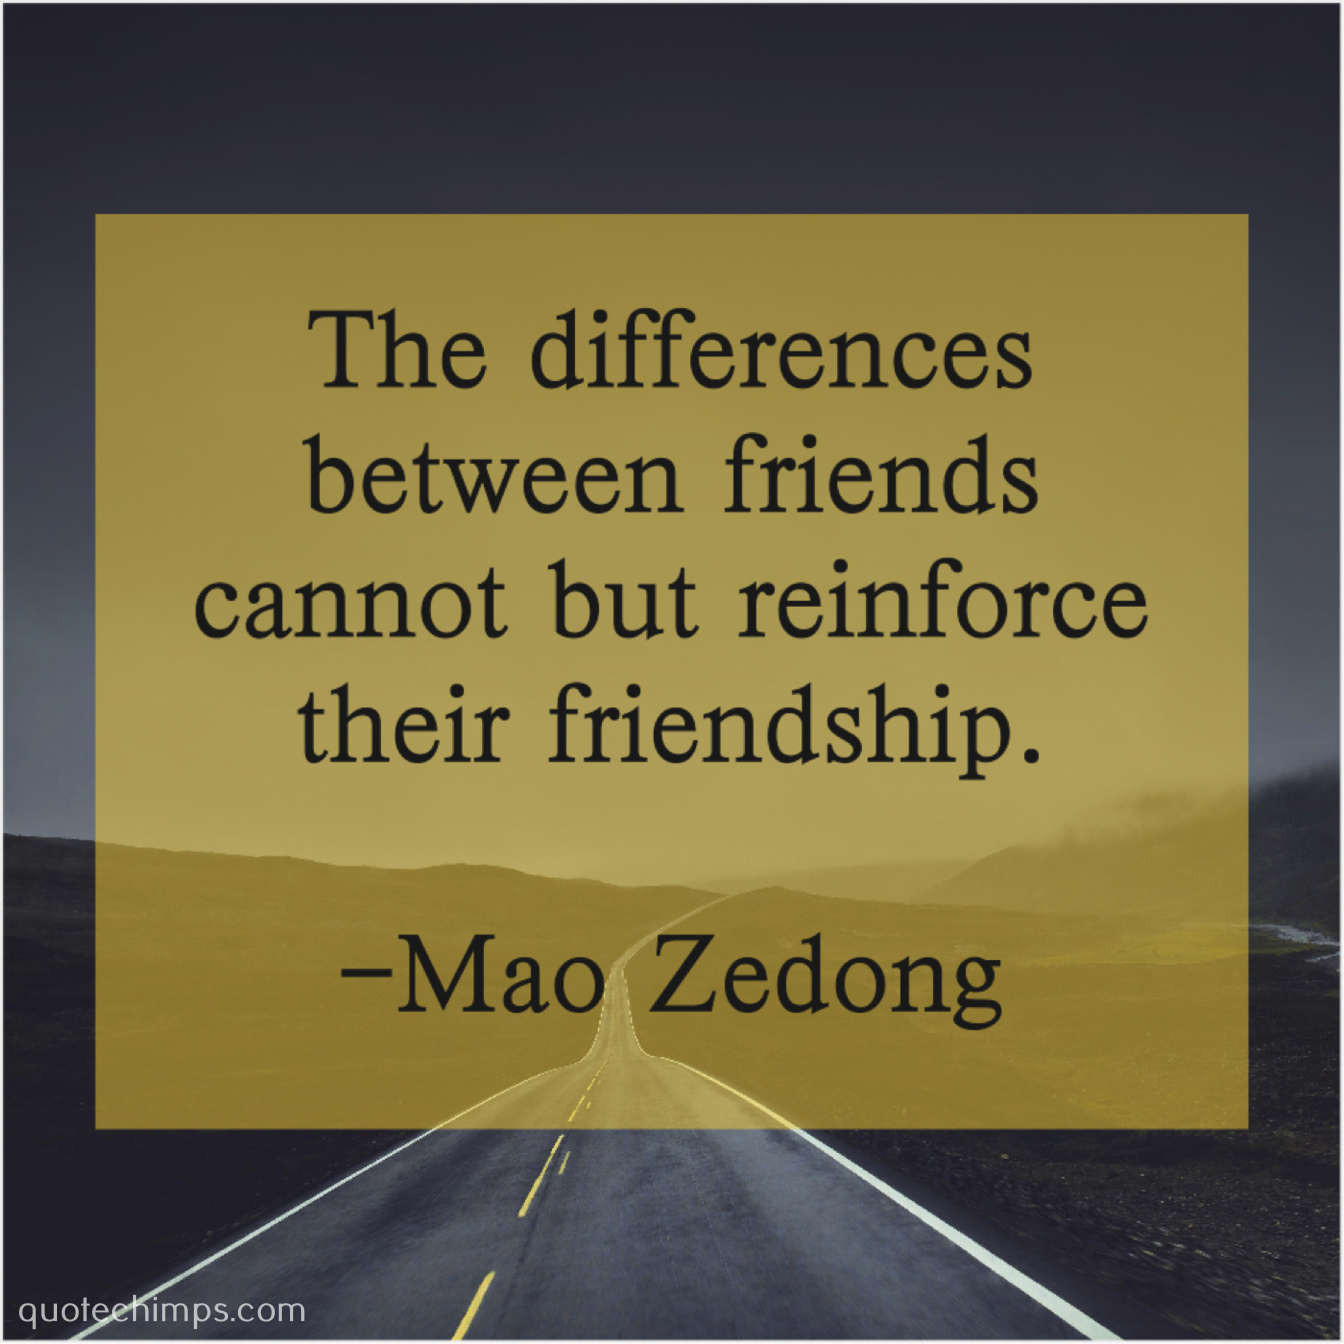 mao zedong the differences between friends cannot quote chimps